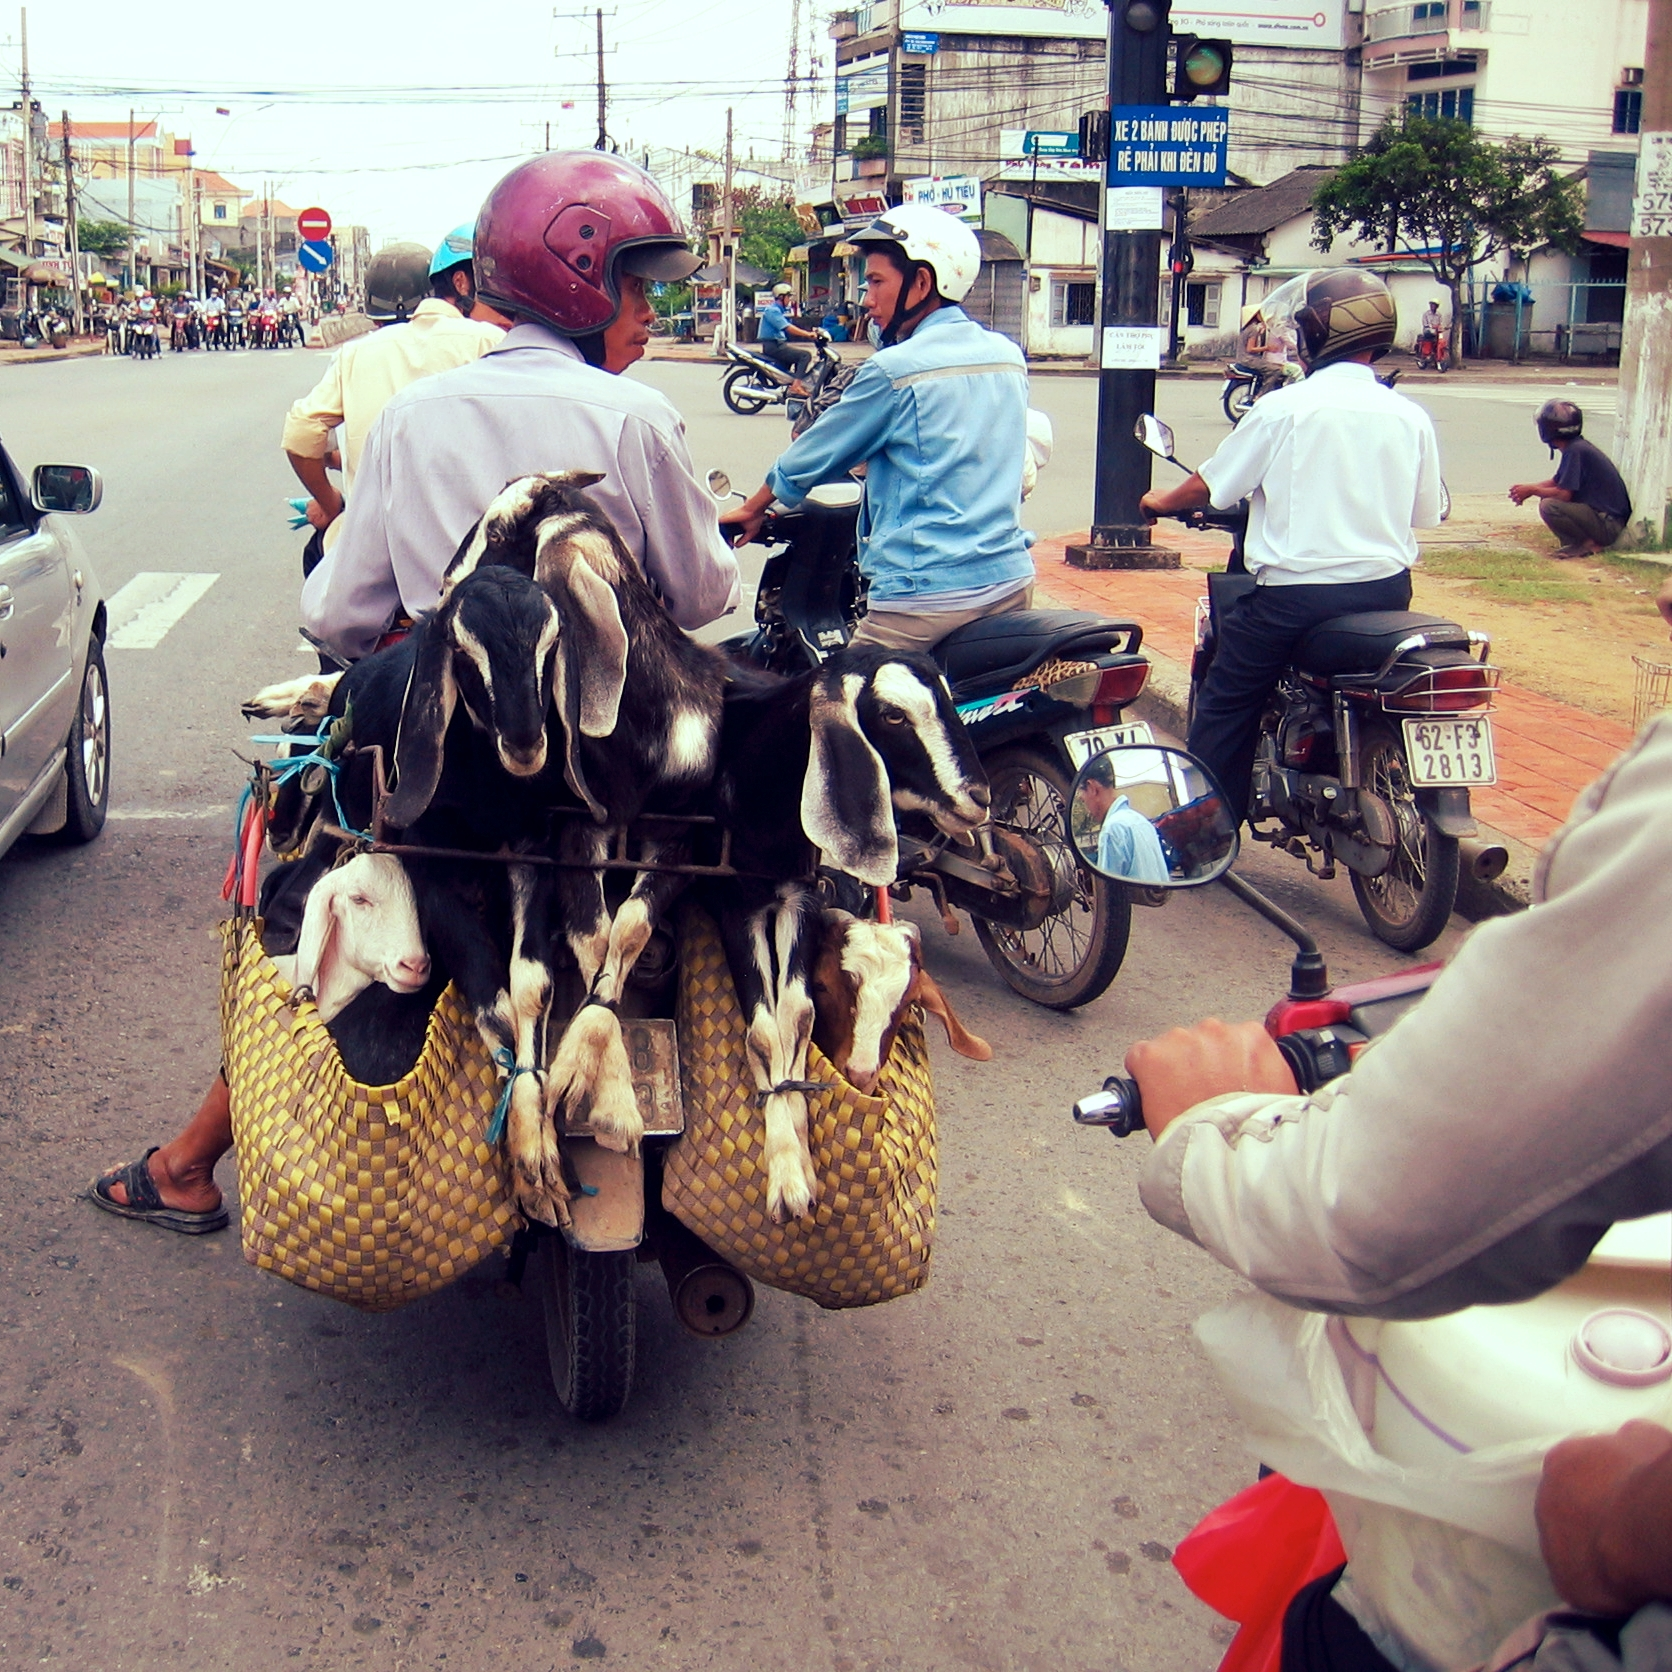 Piloting a motorbike across Vietnam – Oct 2008. A battalion of mopeds waits to attack from the opposite intersection. This was one of the tamer moments, allowing me to snap a quick photo. Also, goats.